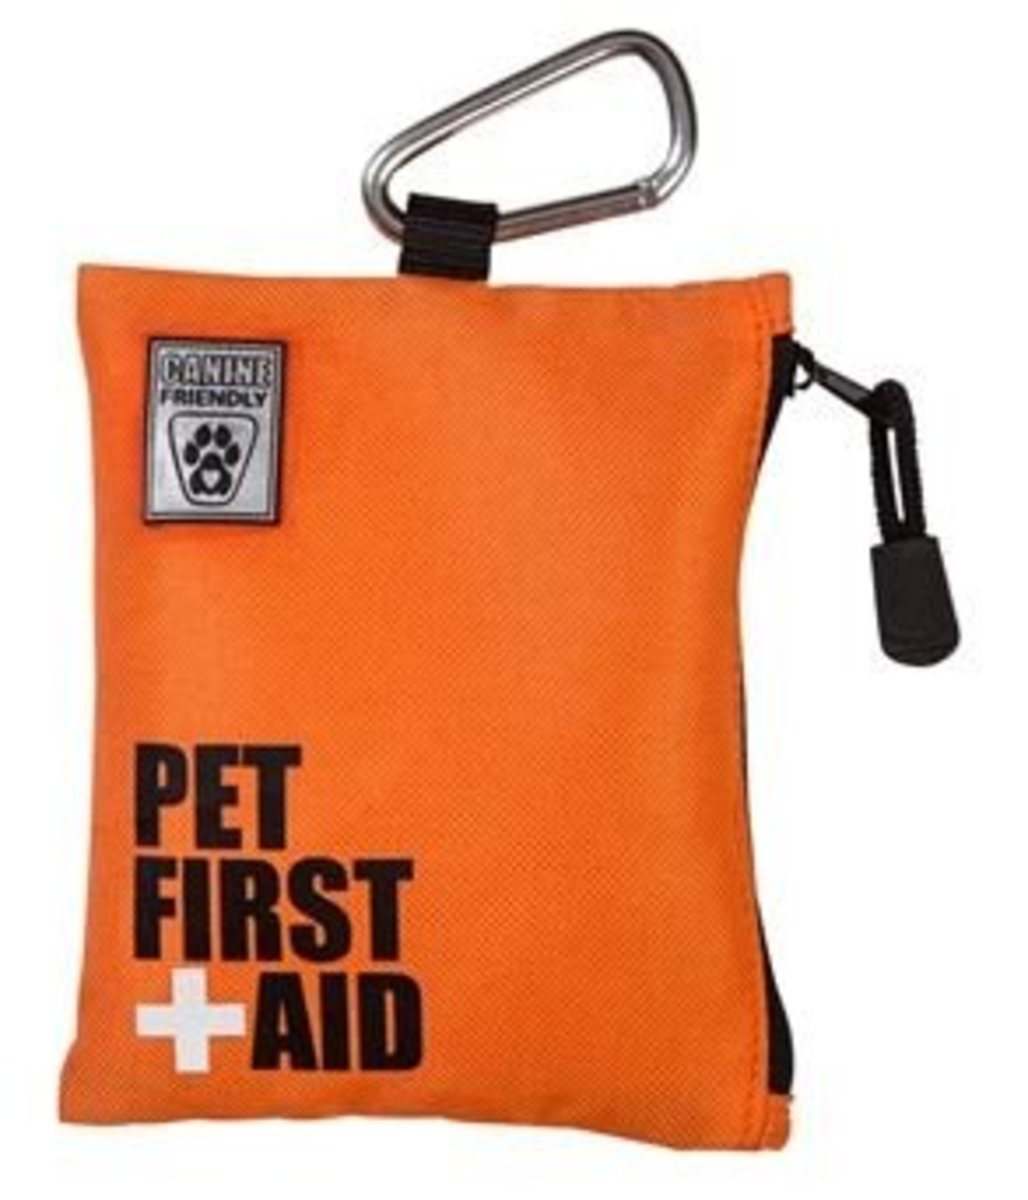 Portable first aid kit for dogs